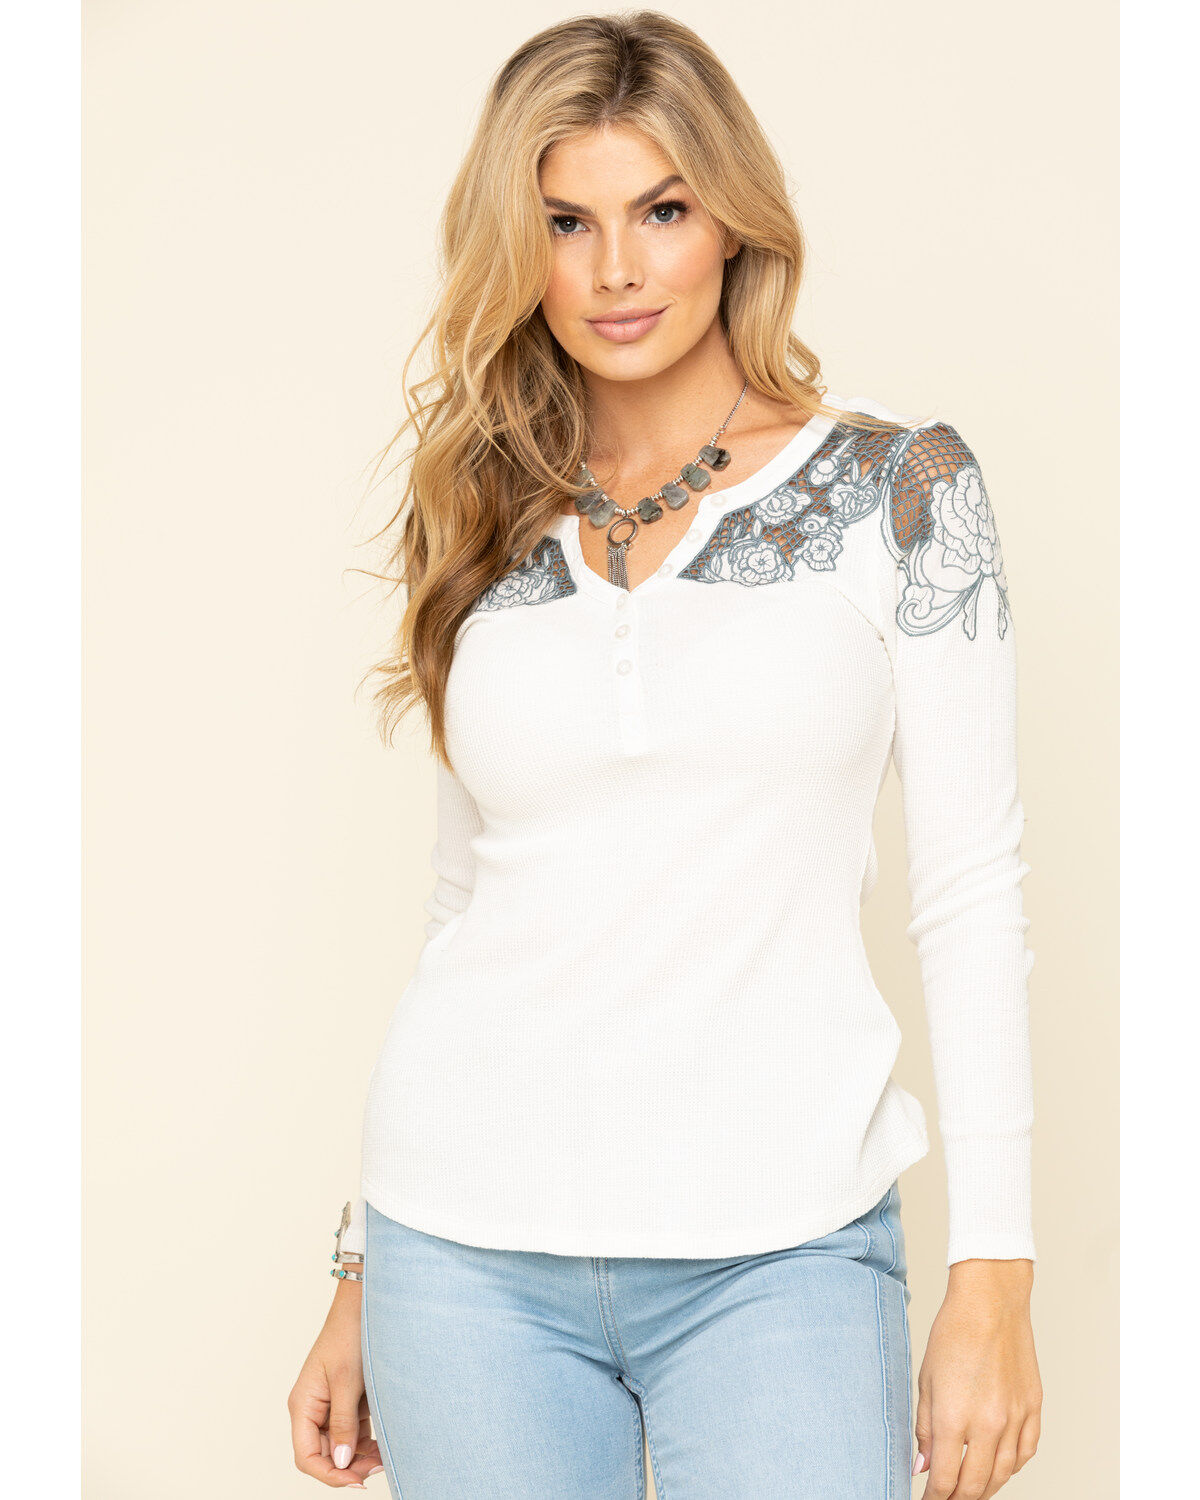 New Women Ladies Grey Flower Embroidery Print Cut Out Long Sleeve Top Blouse